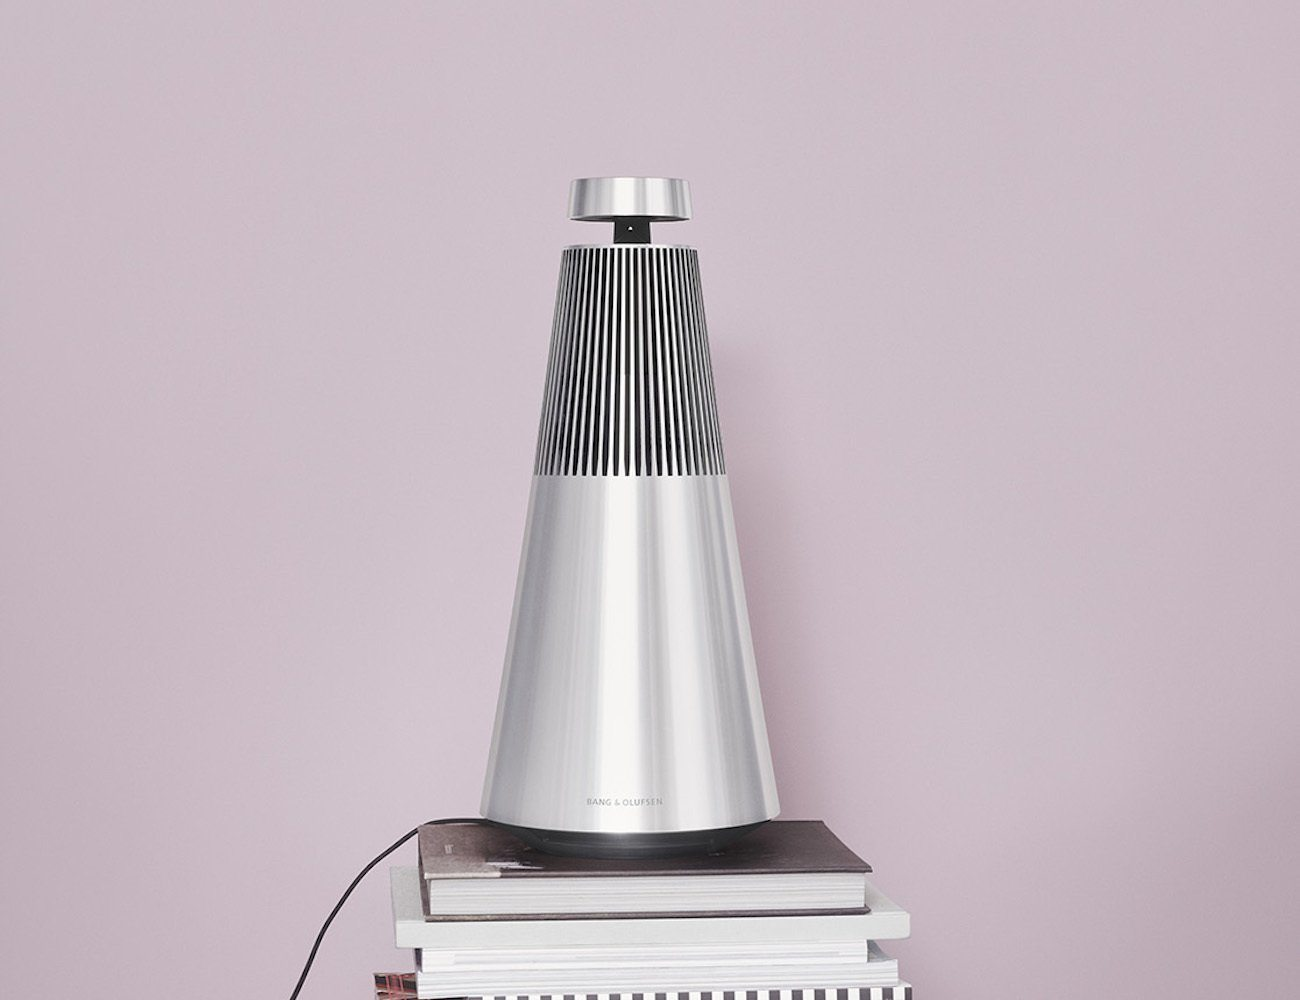 Bang & Olufsen's New BeoSound Speaker Will Surprise and Delight